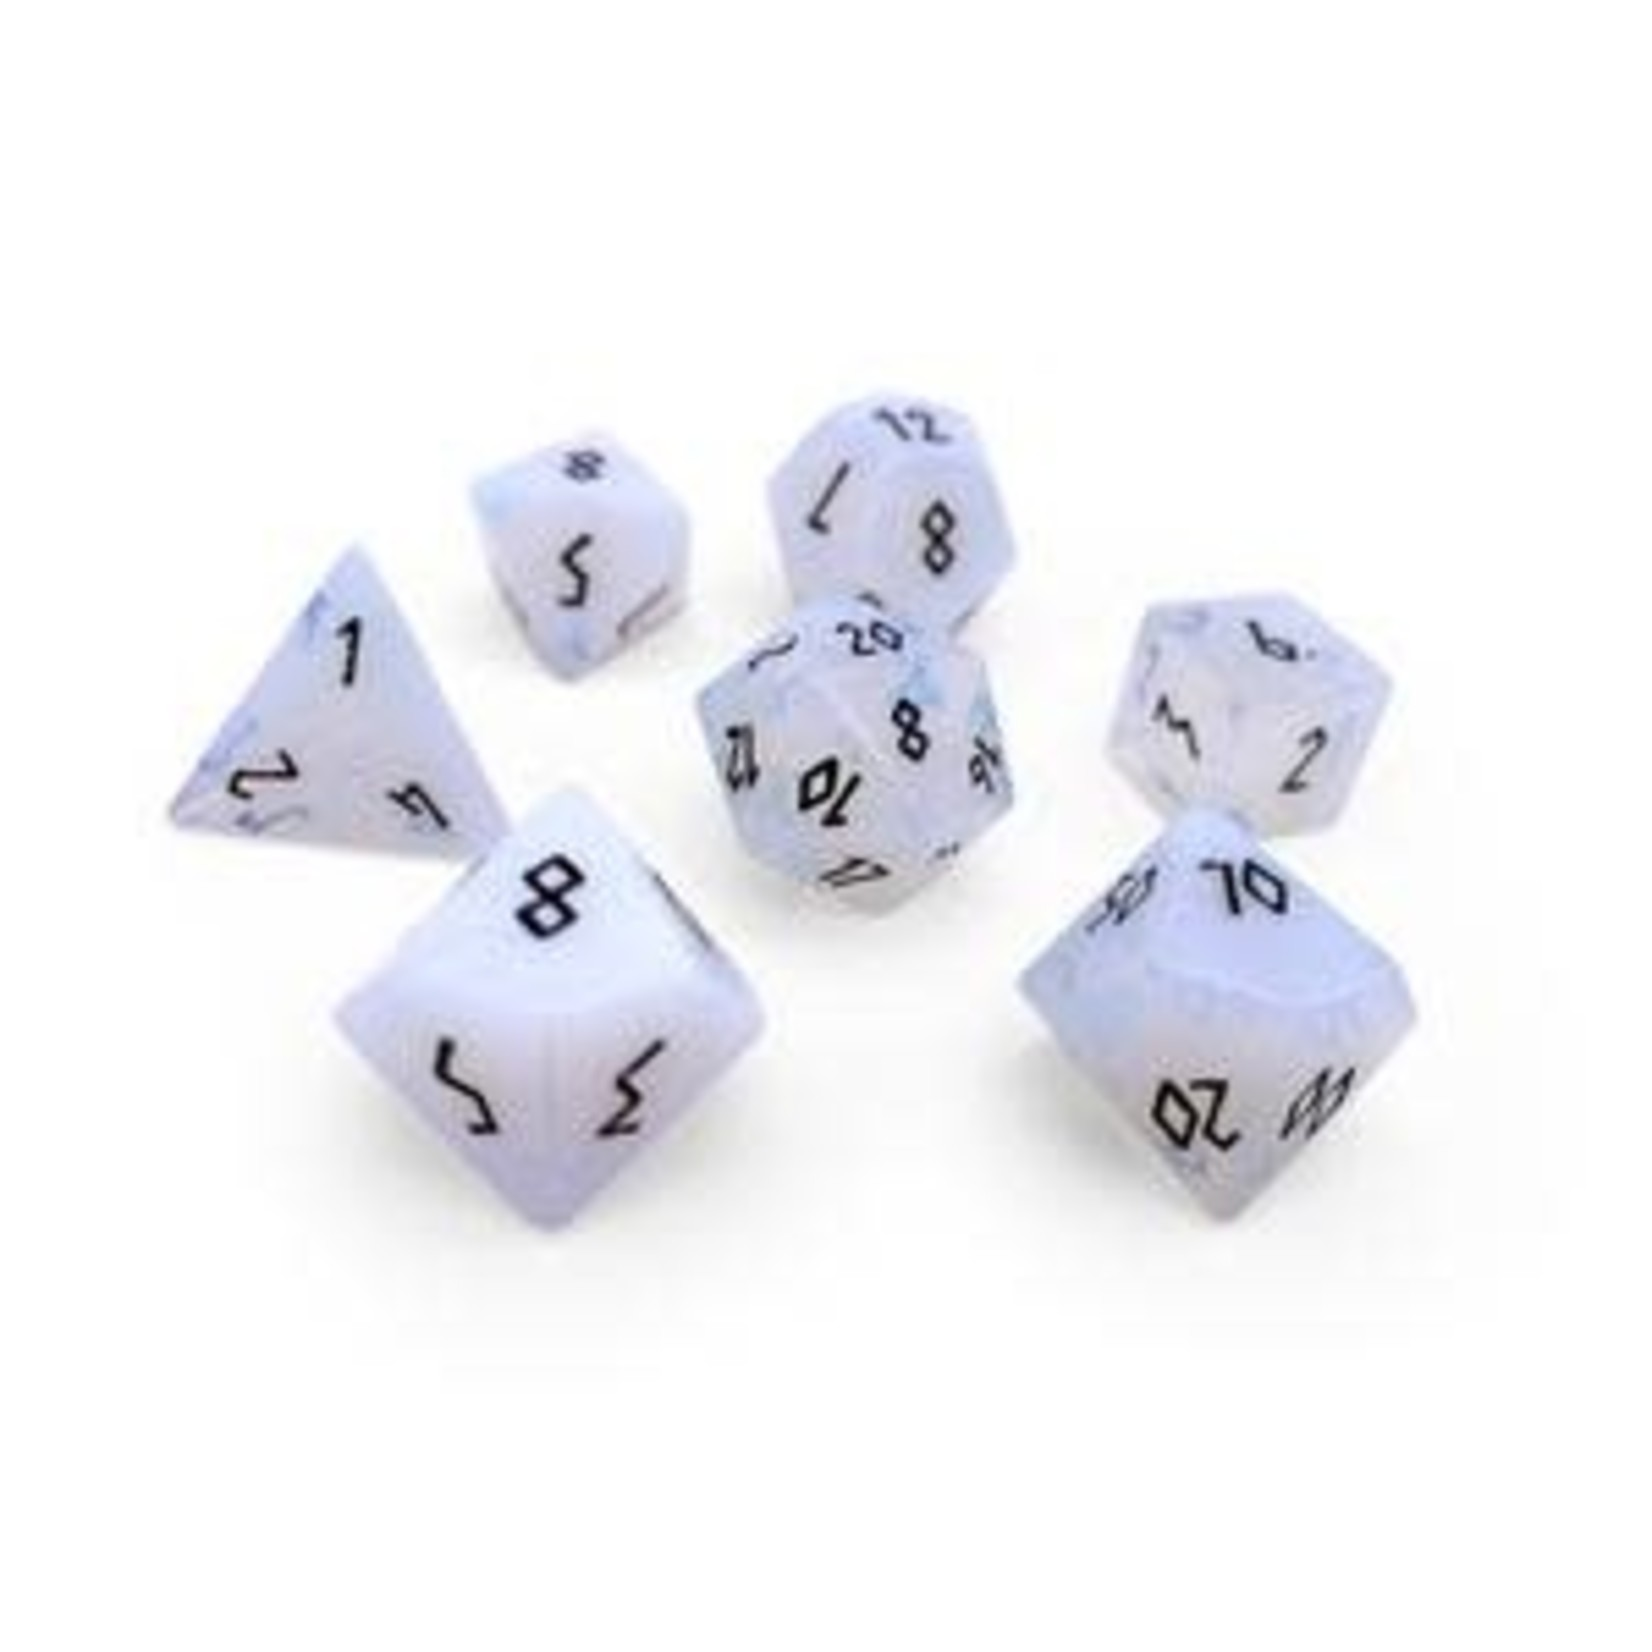 Norse Foundry Norse Foundry Dice: Gemstone Dice Set - Opalite